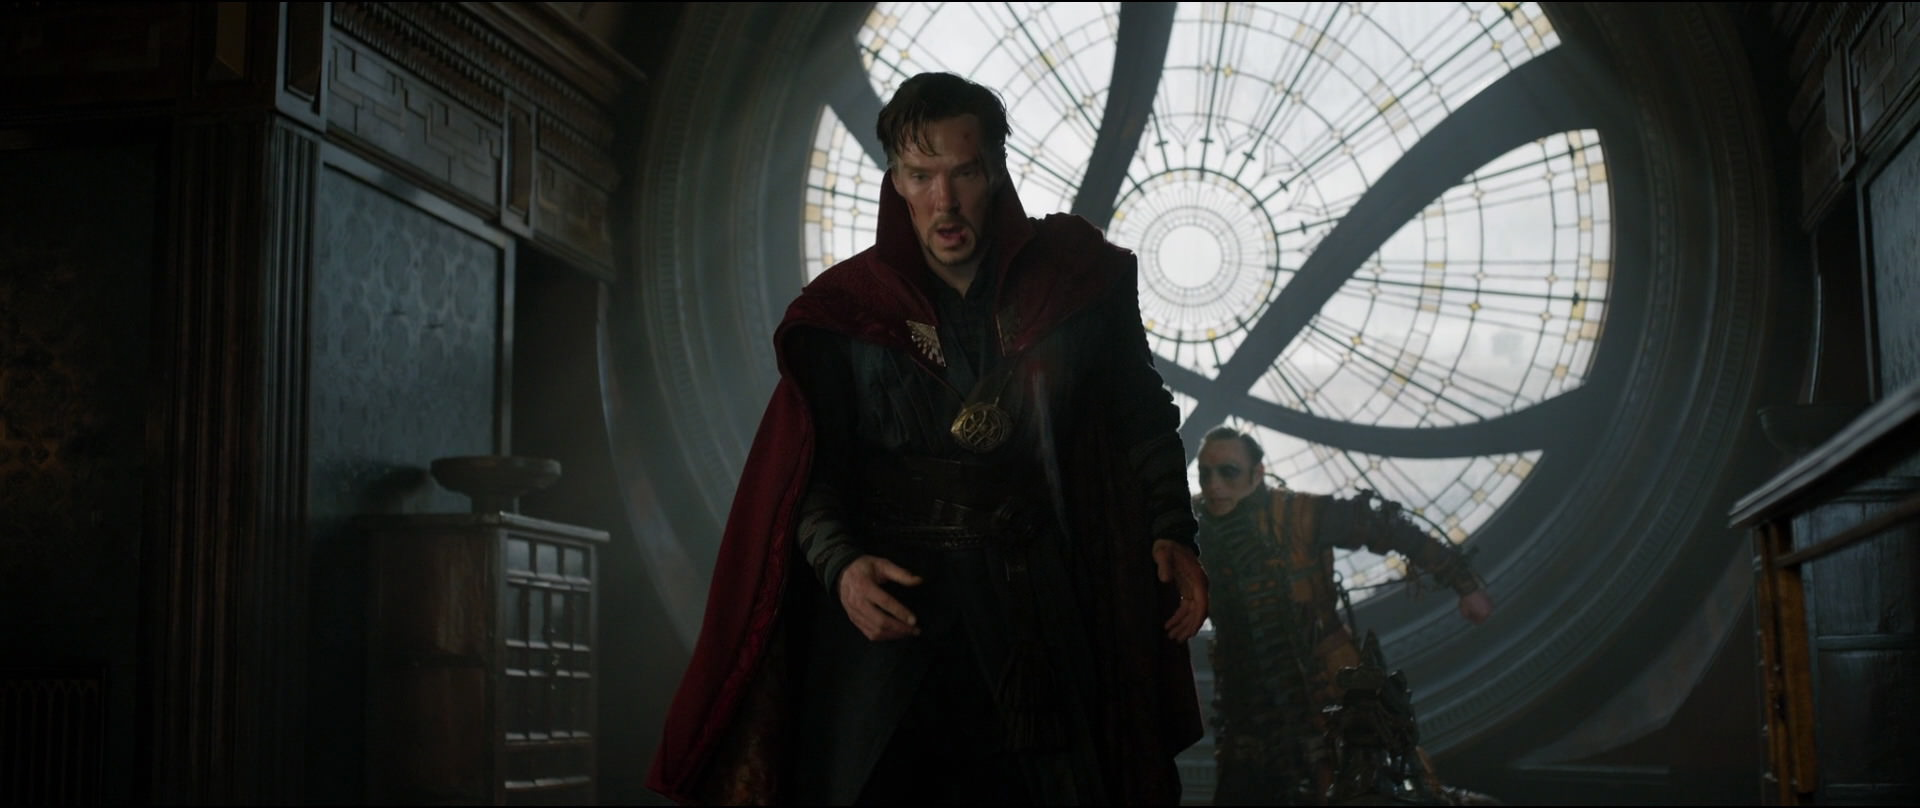 http://caps.pictures/201/6-doctorstrange/full/dr-strange-movie-screencaps.com-7717.jpg